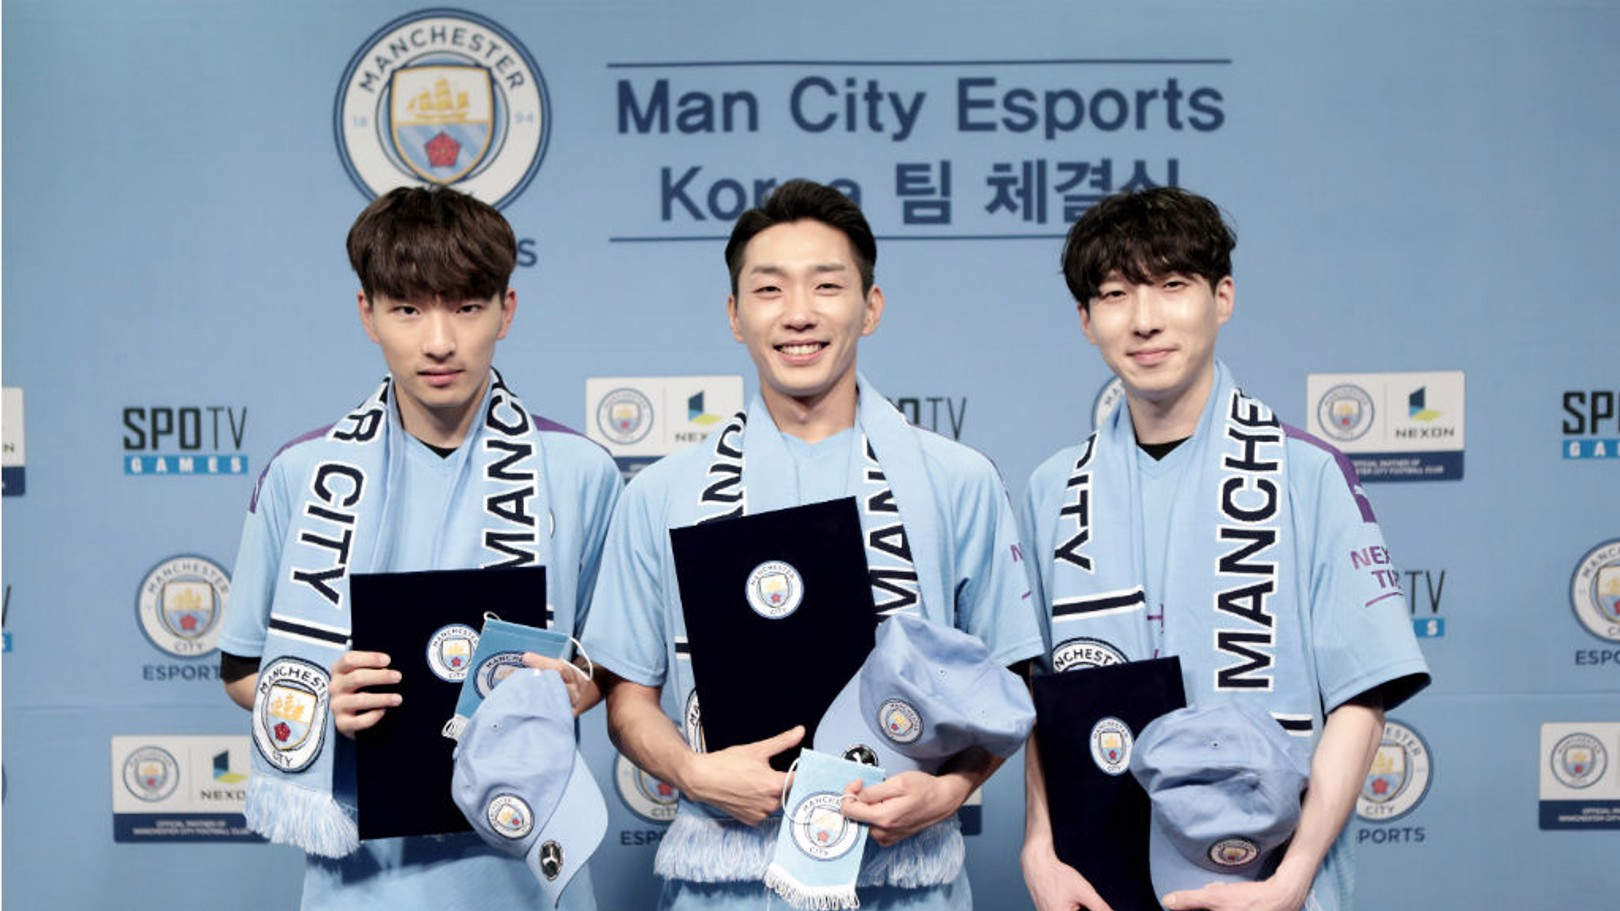 City and Nexon unveil Club's latest Esports team